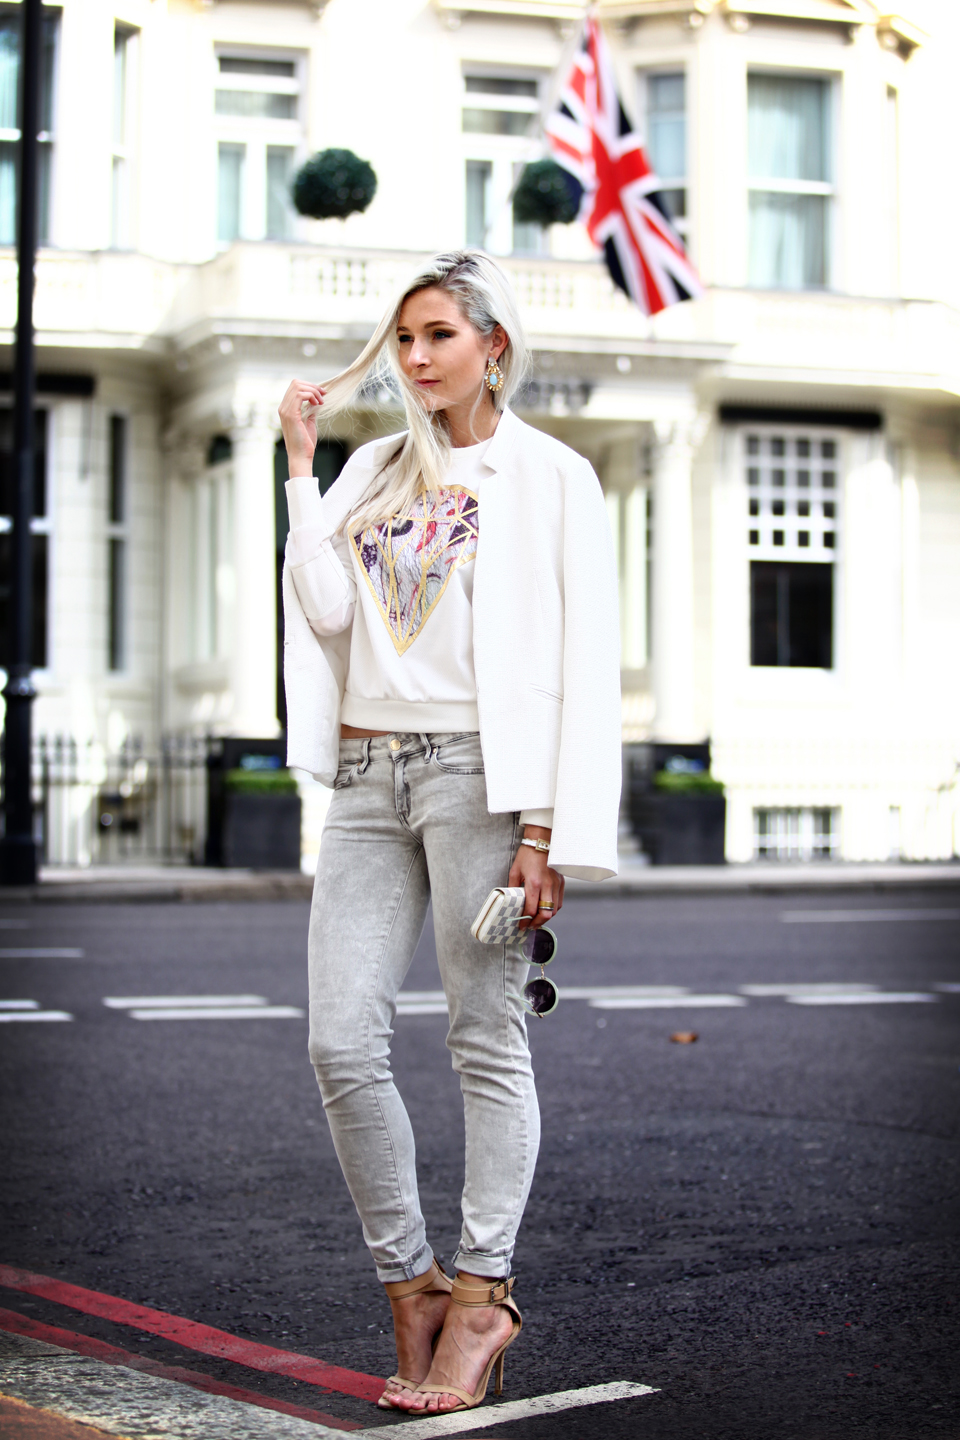 london-fashion-blogger-amandacusto-mango-fashion-blogger-06.jpg